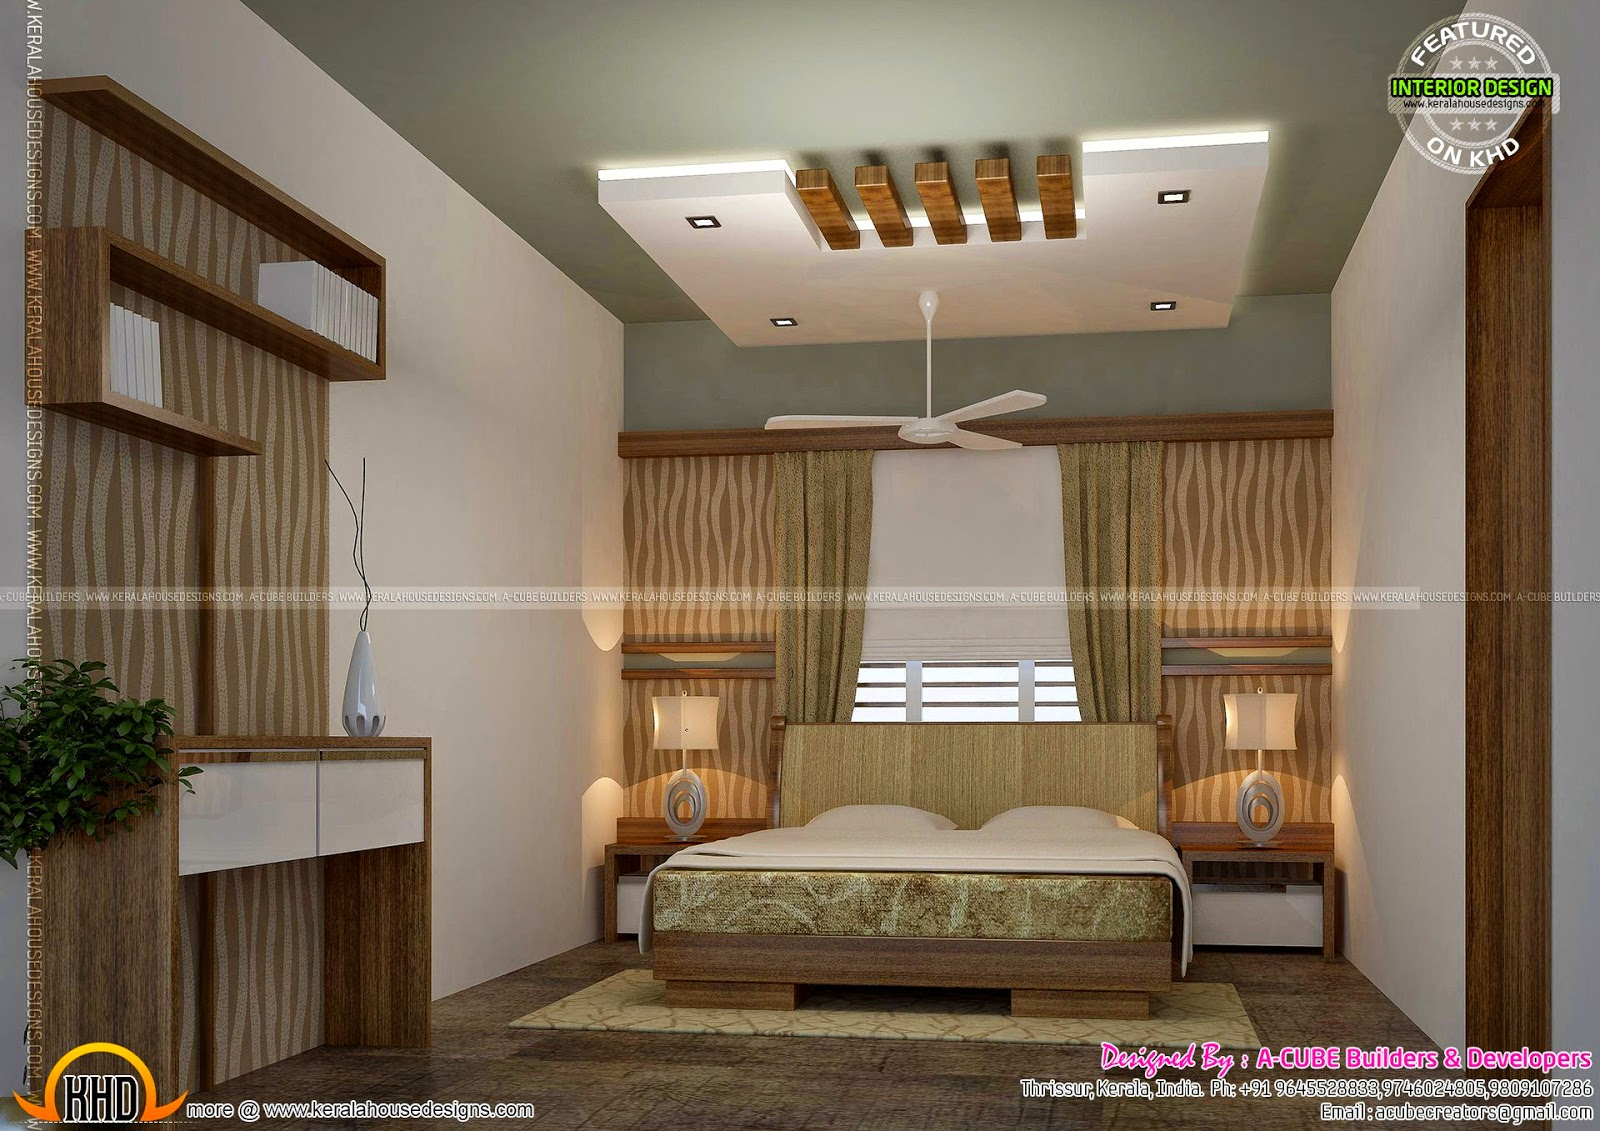 Kerala interior design ideas kerala home design and for Kerala home interior